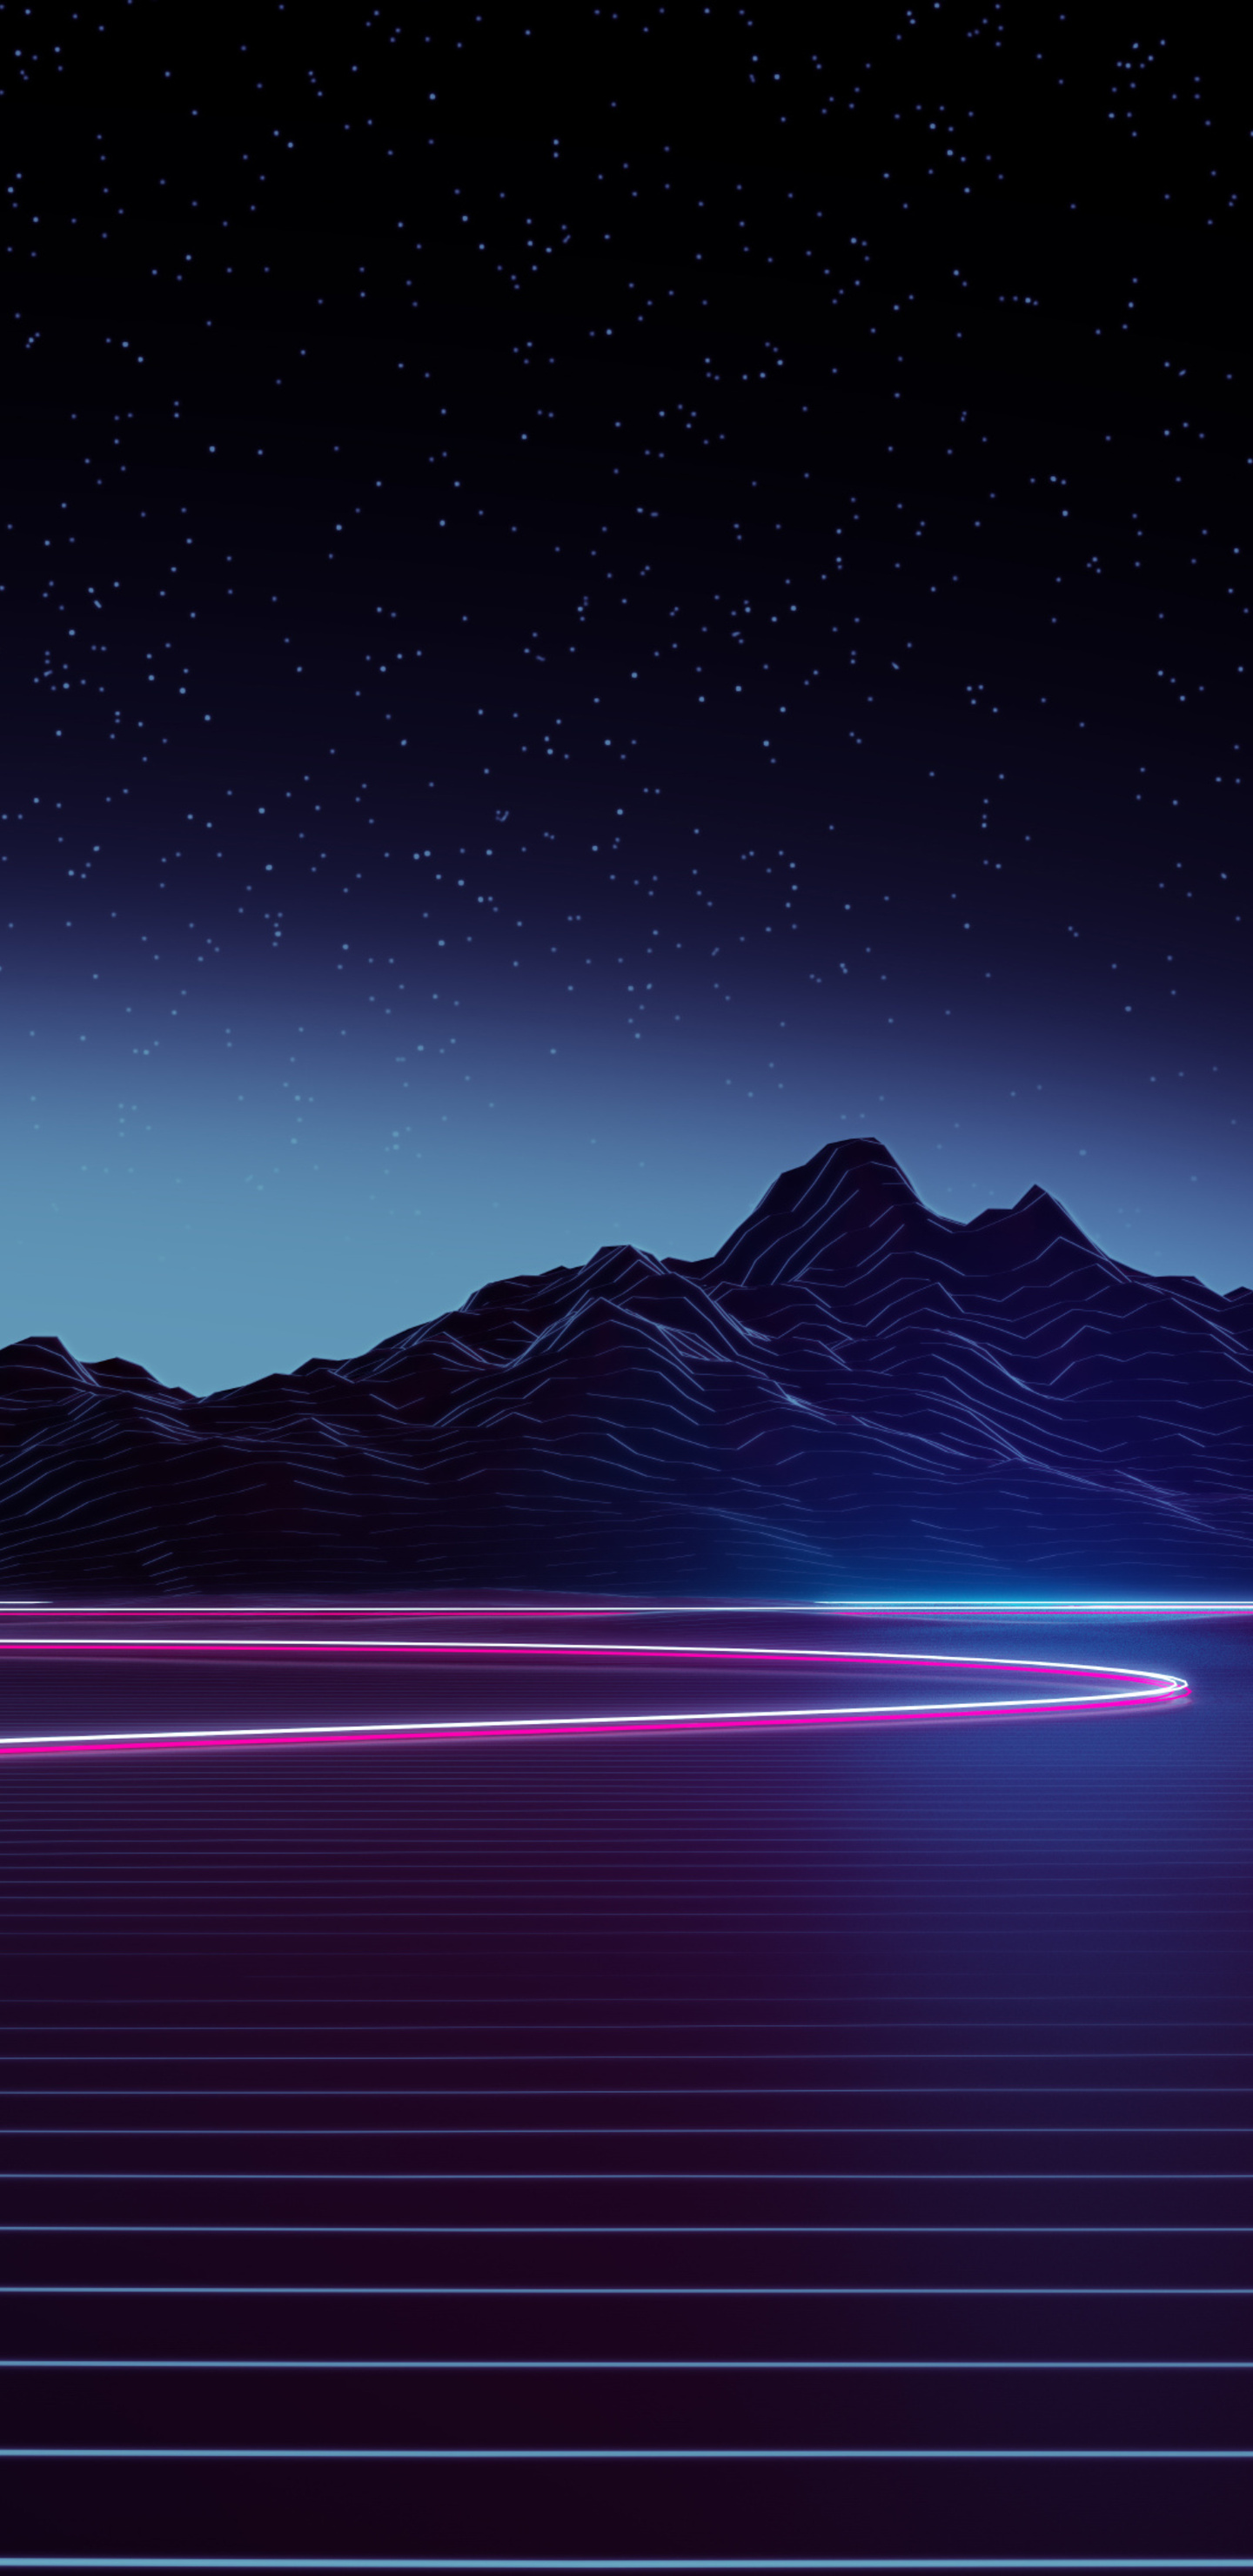 1440x2960 neon highway 4k samsung galaxy note 9 8 s9 s8 - Samsung s9 wallpaper 4k ...